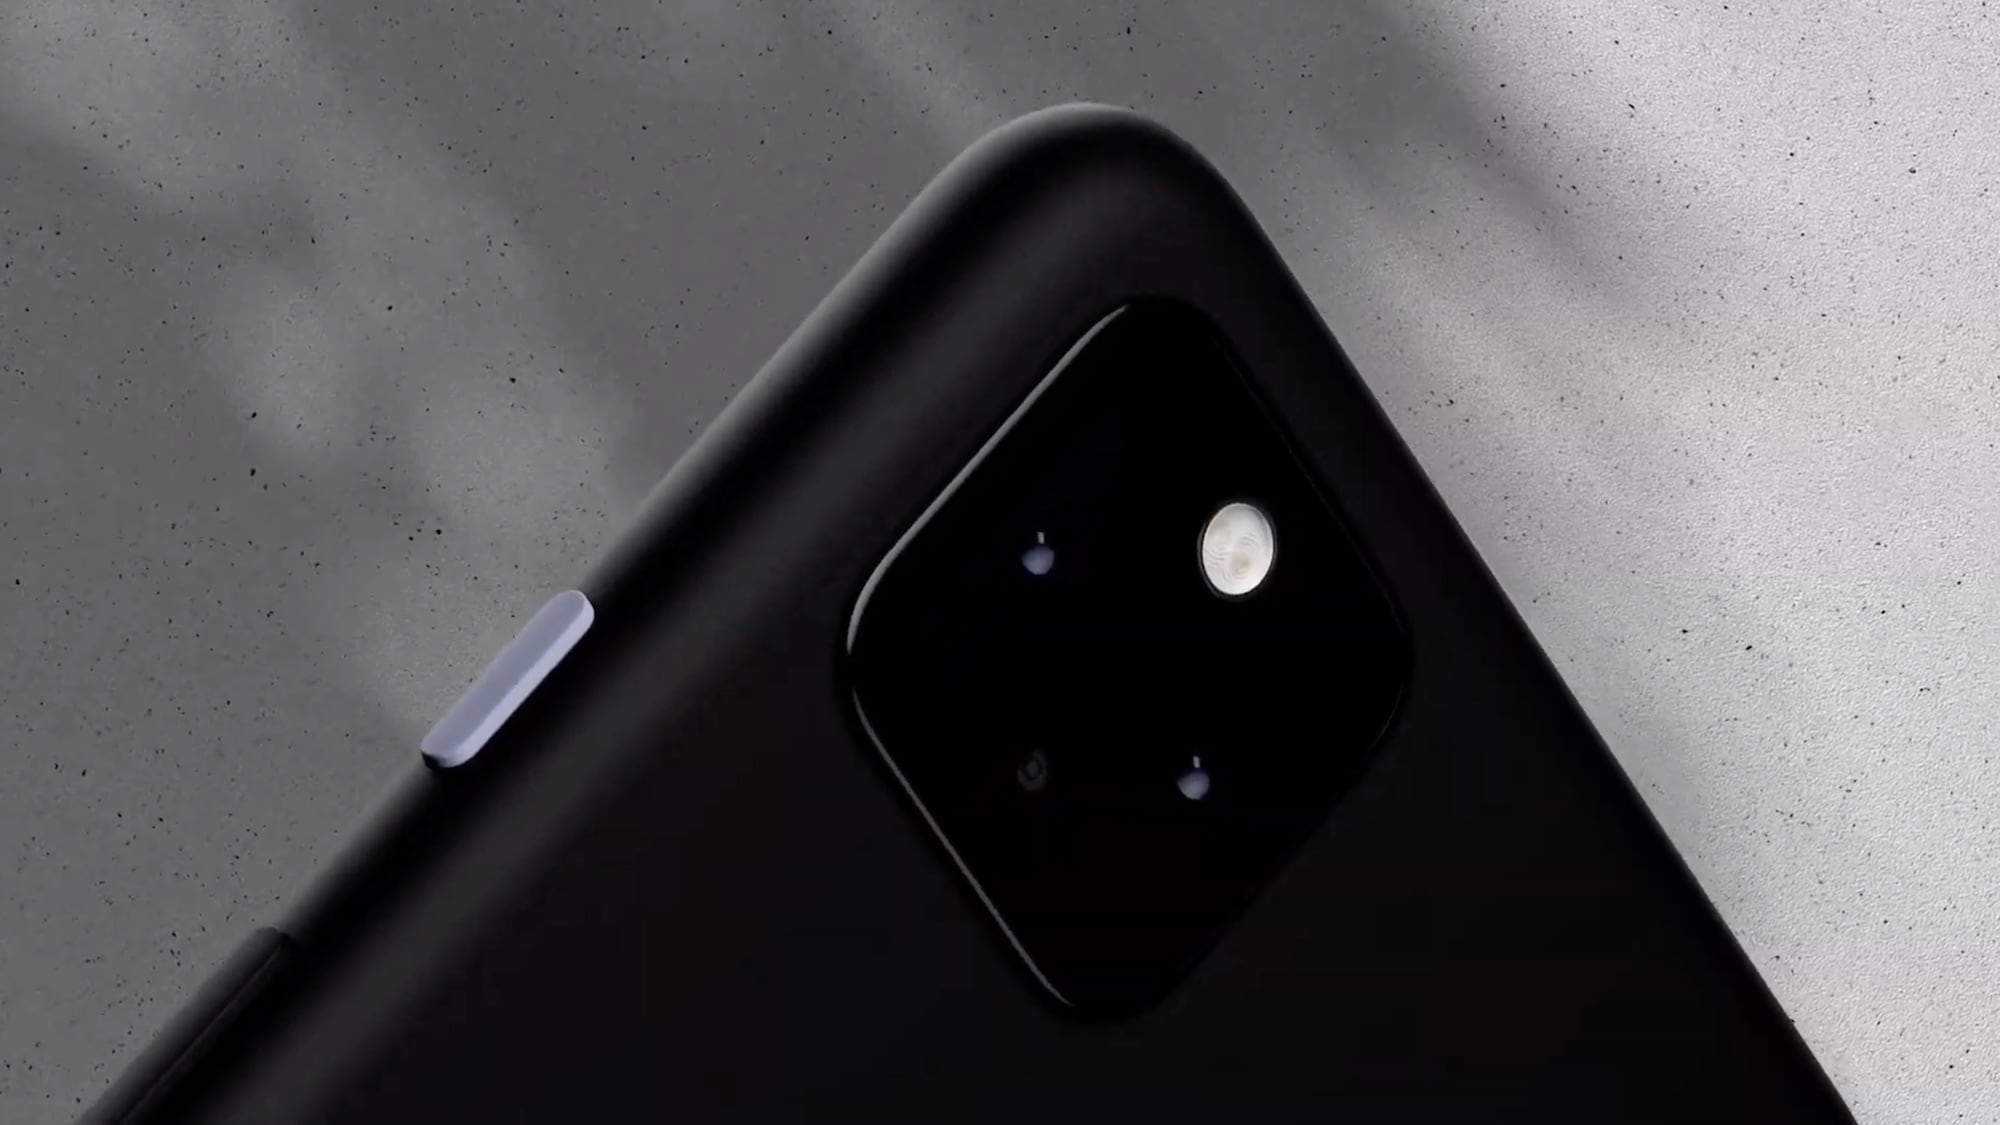 Google Pixel 4a 5G smartphone offers a gorgeous edge-to-edge display